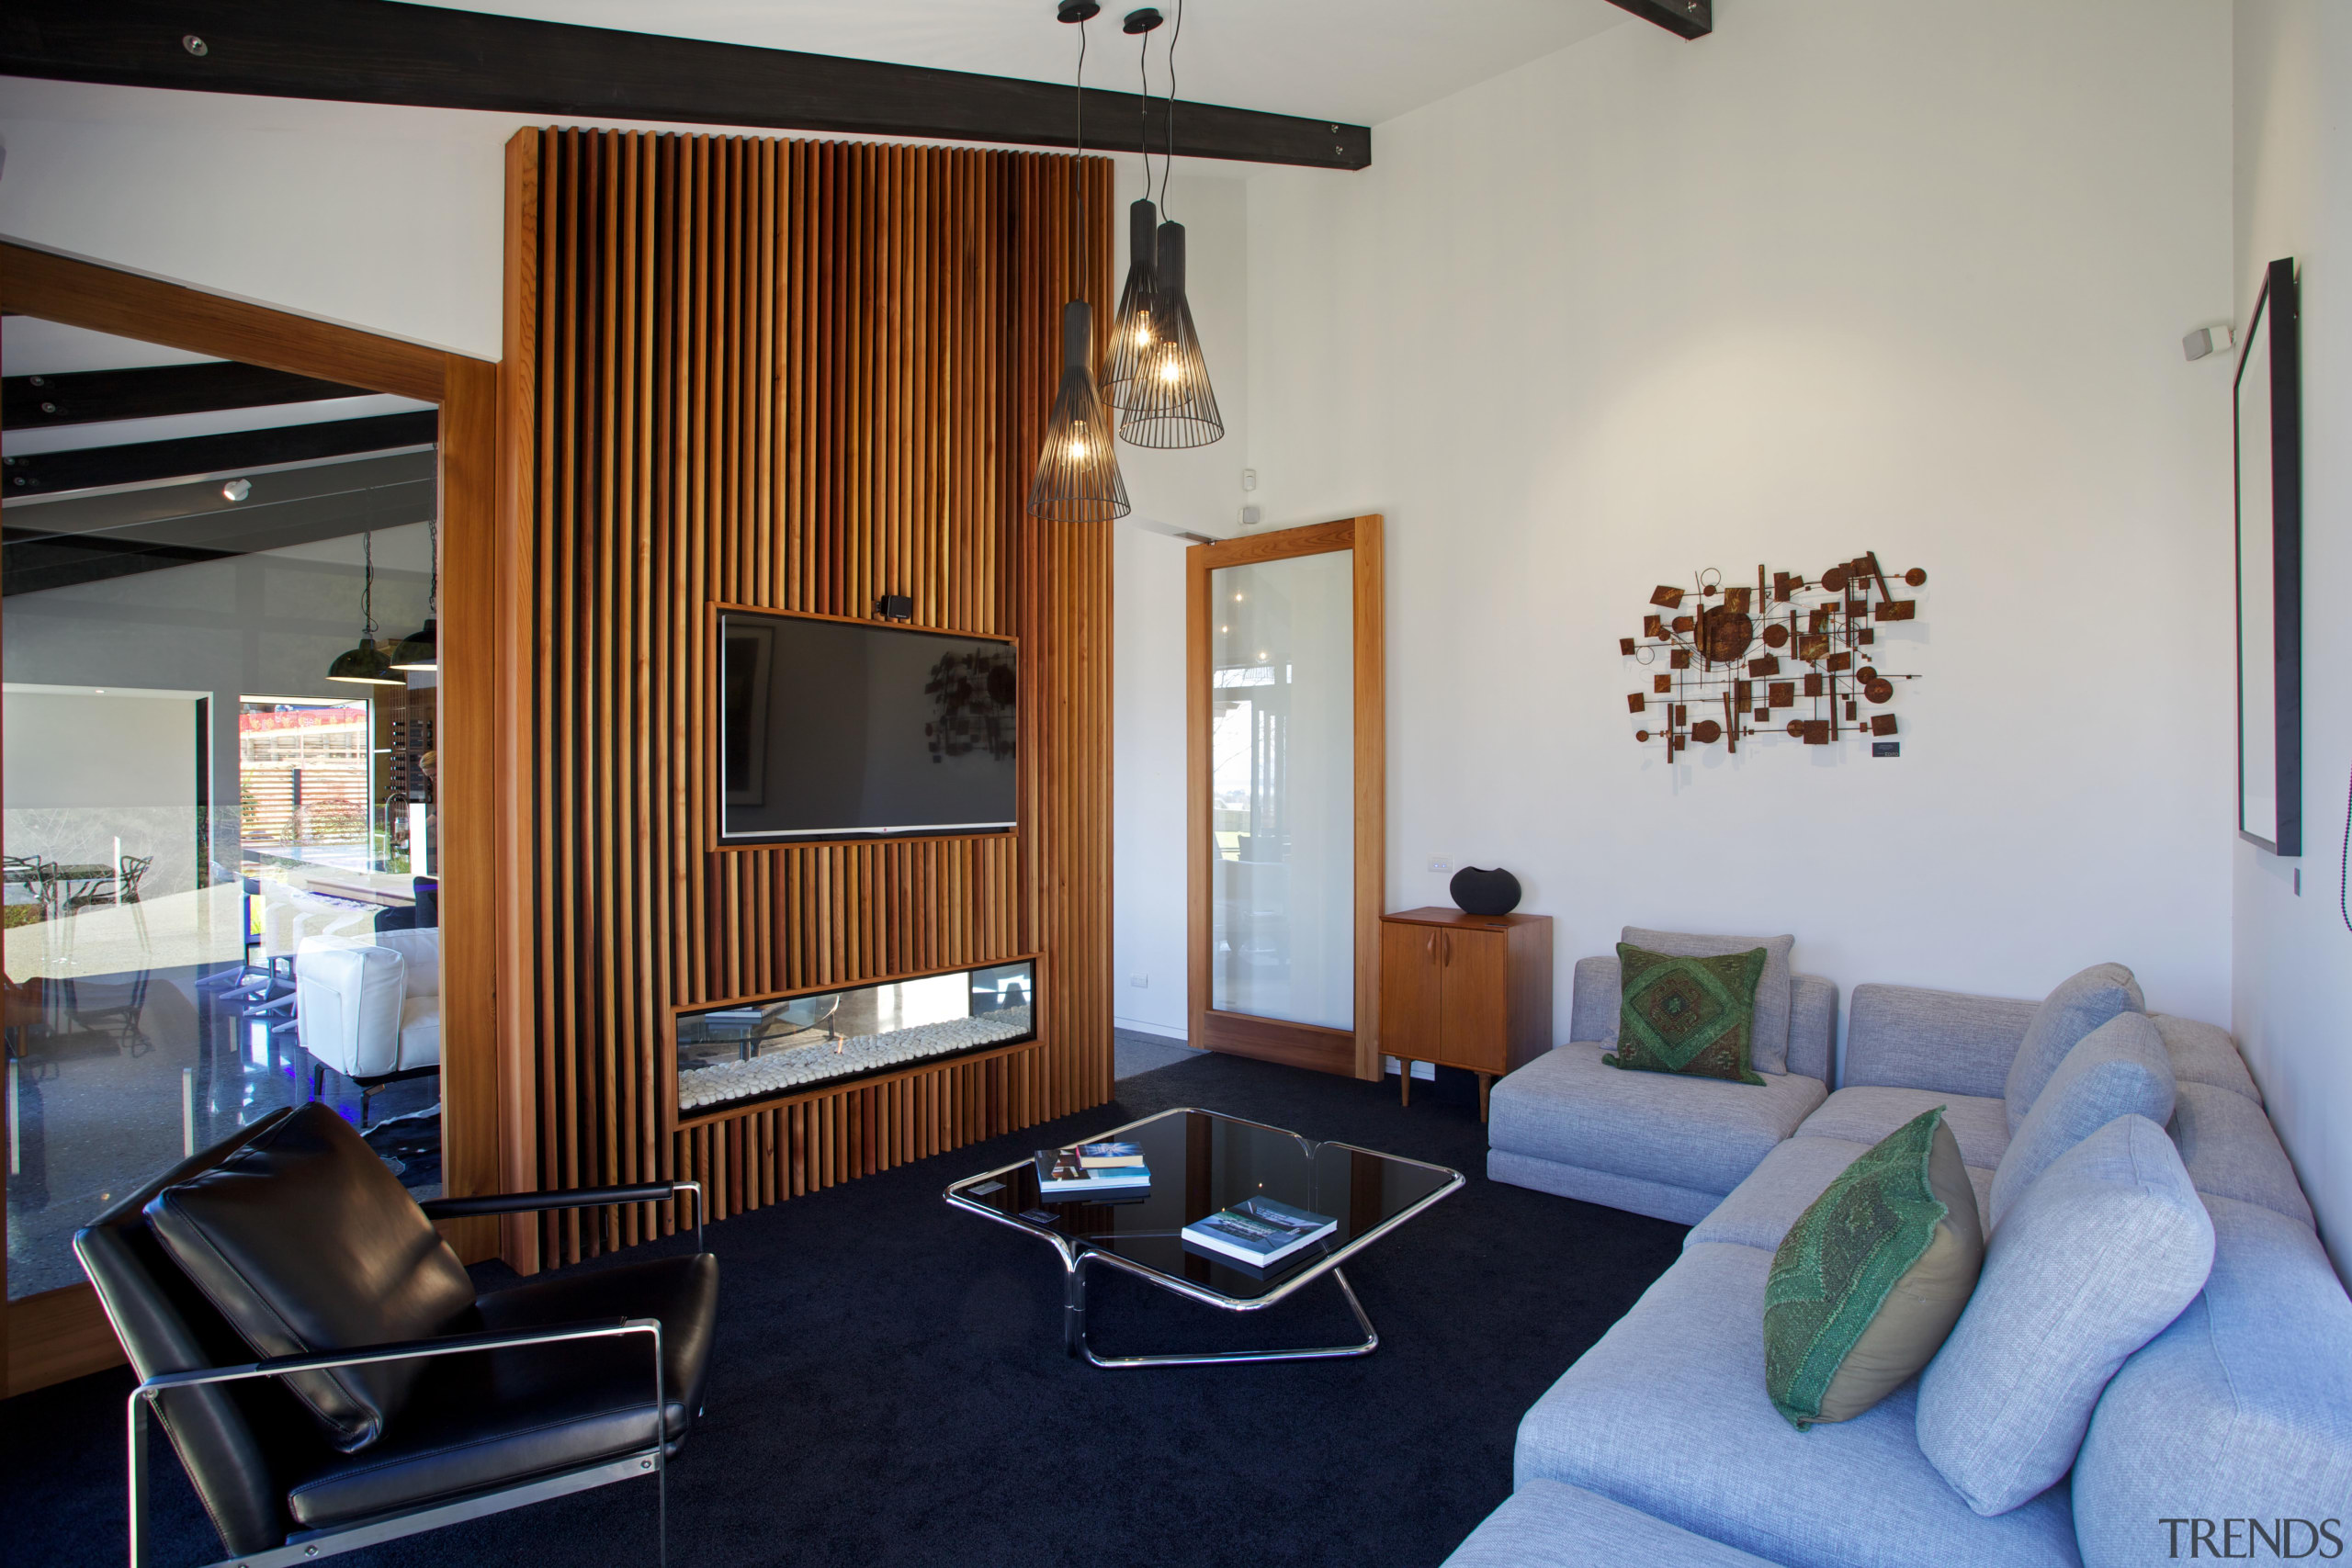 Family living in this David Reid show home interior design, living room, real estate, room, gray